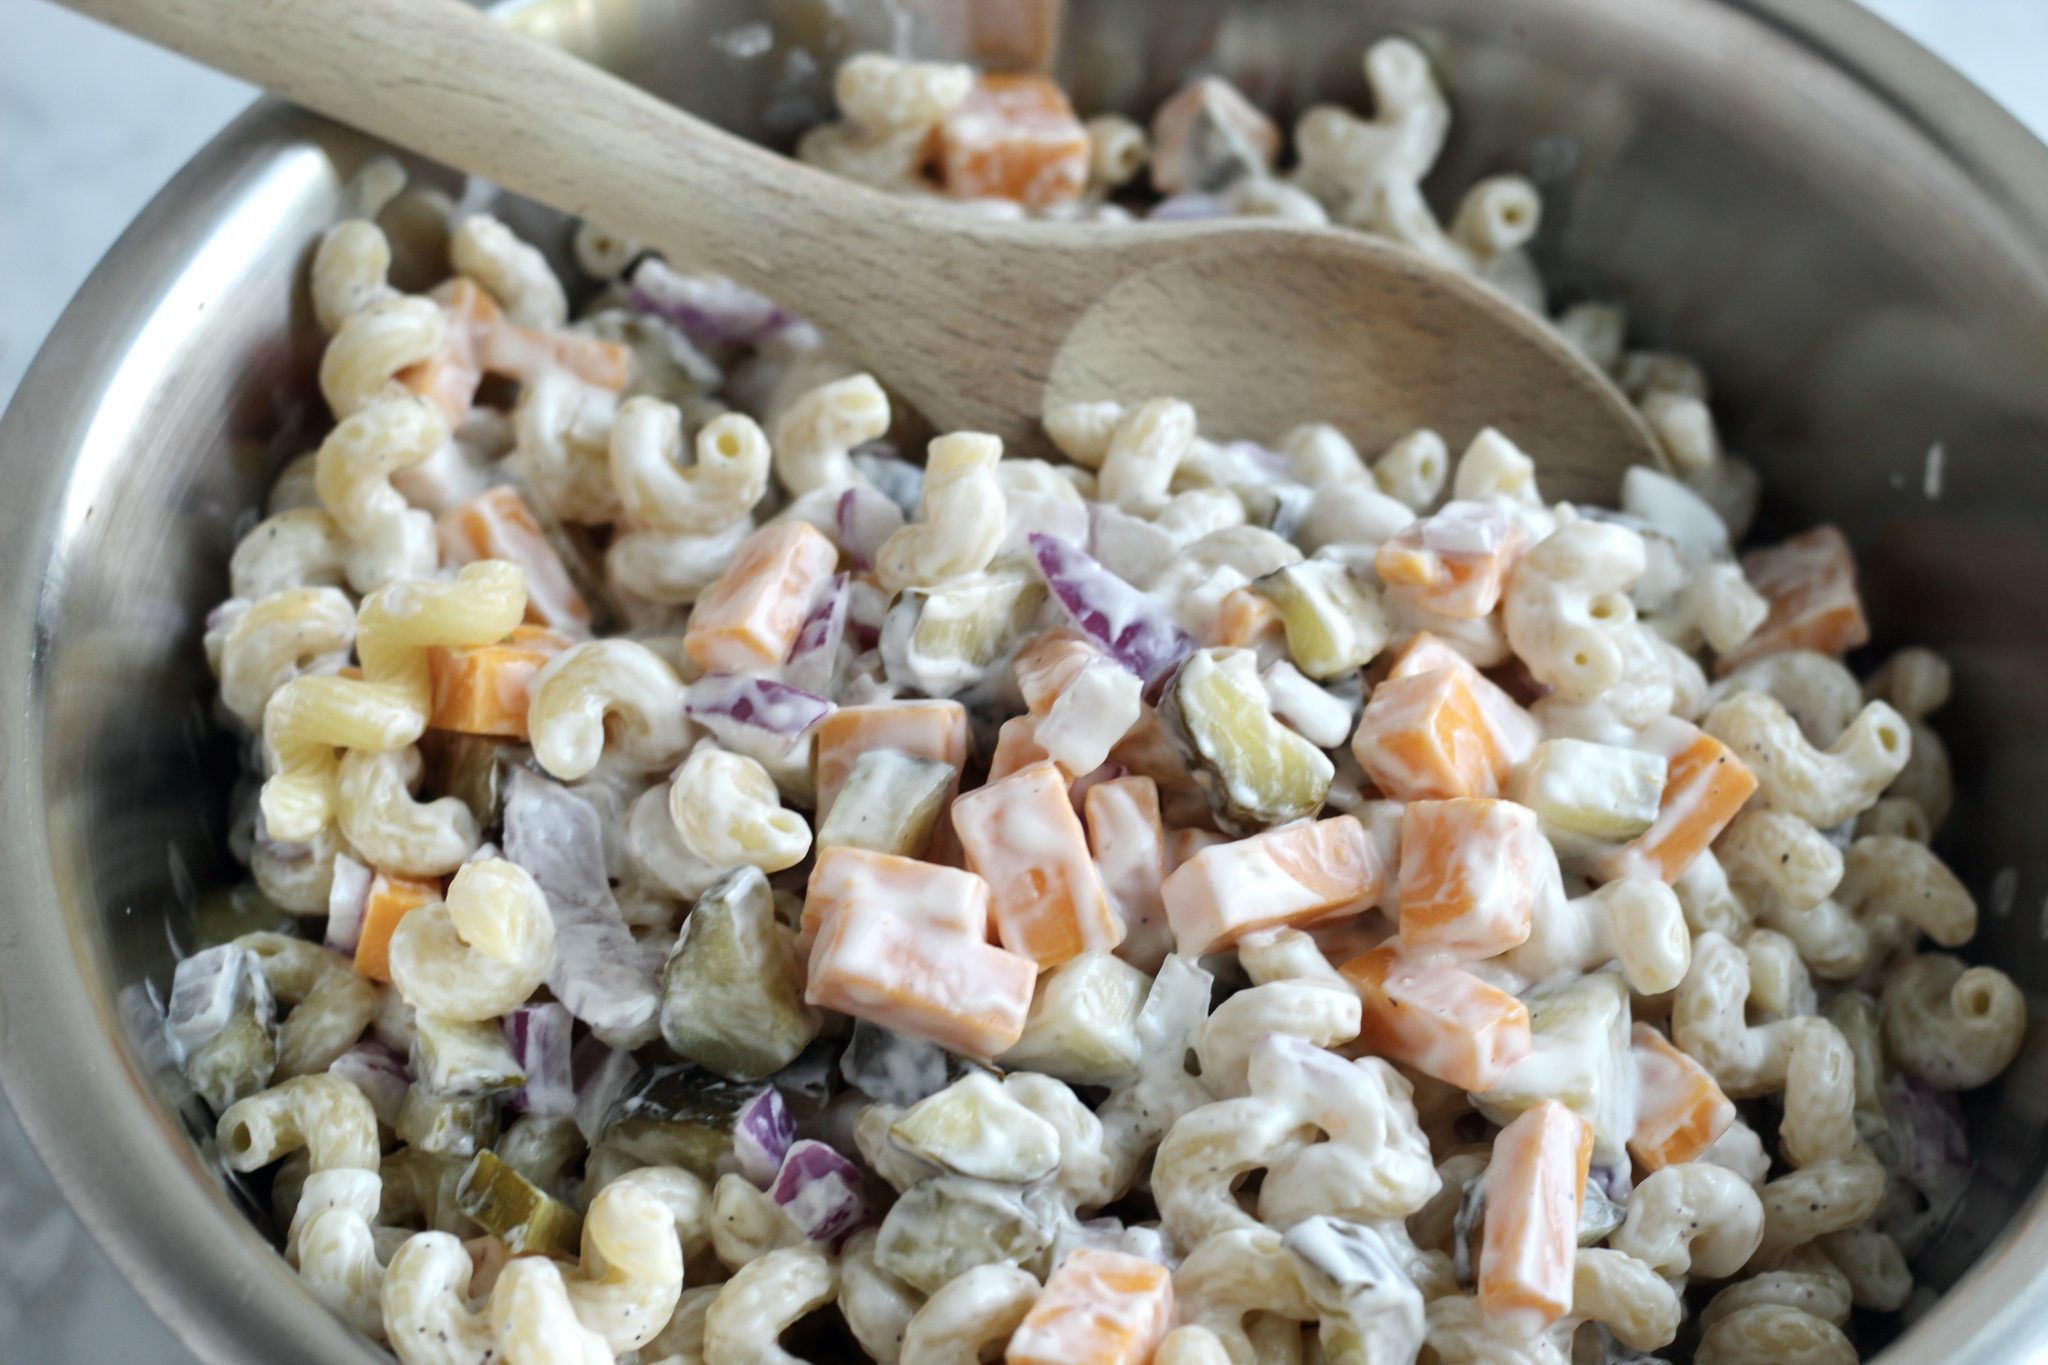 dill pickle pasta salad with a creamy sauce